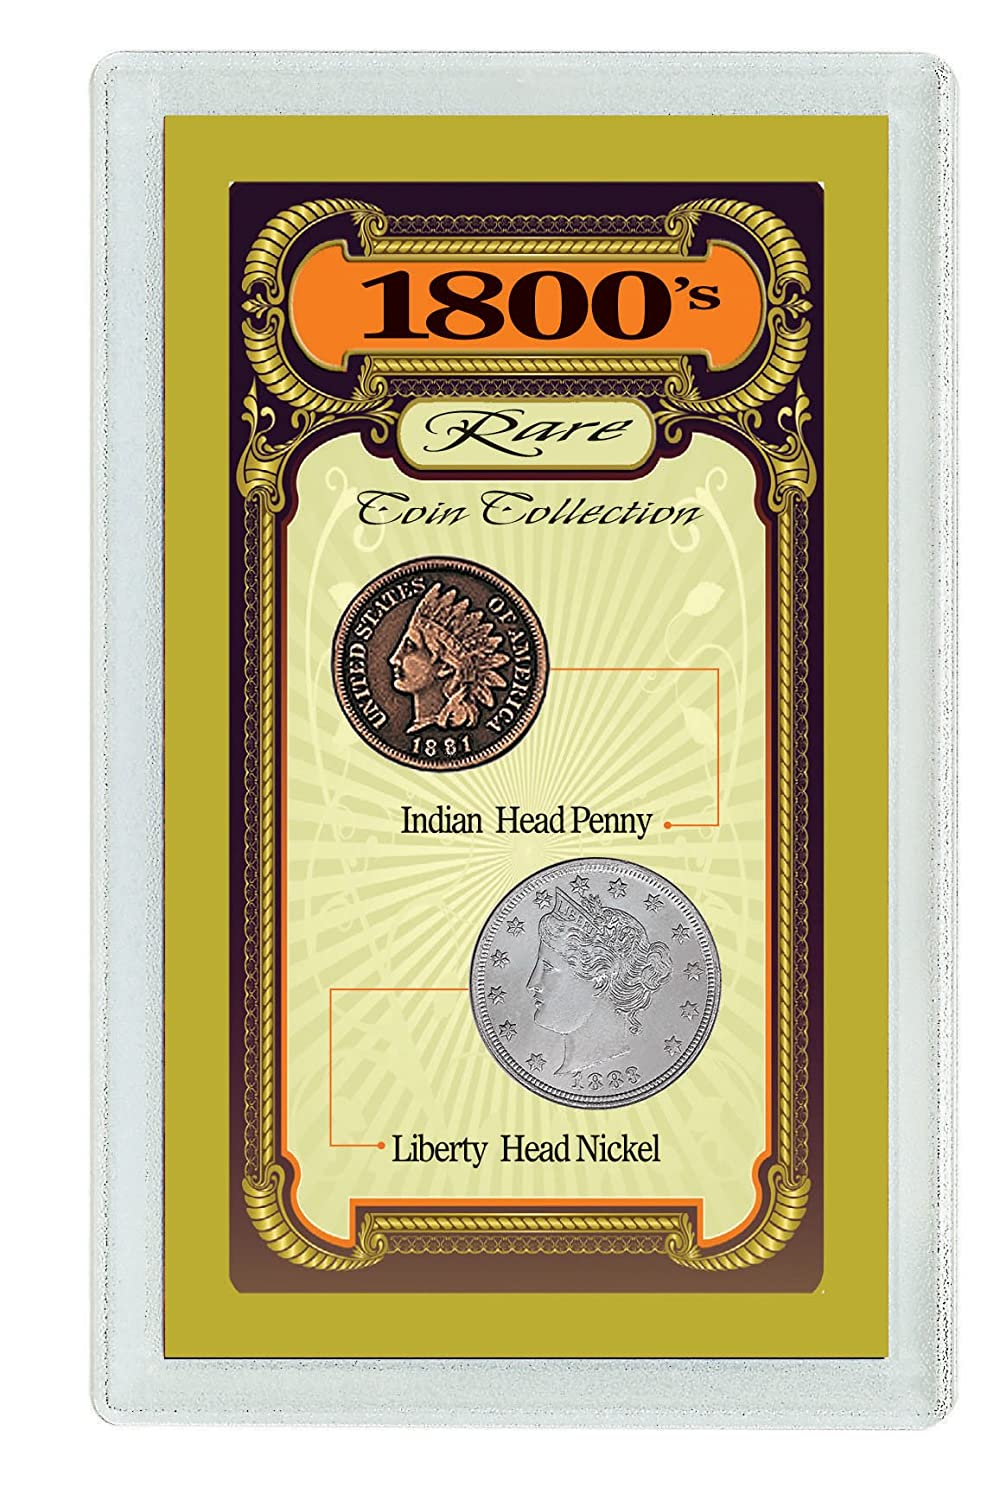 American Coin Treasures 1800's Rare Coin Collection UPM Global--DROPSHIP 1634